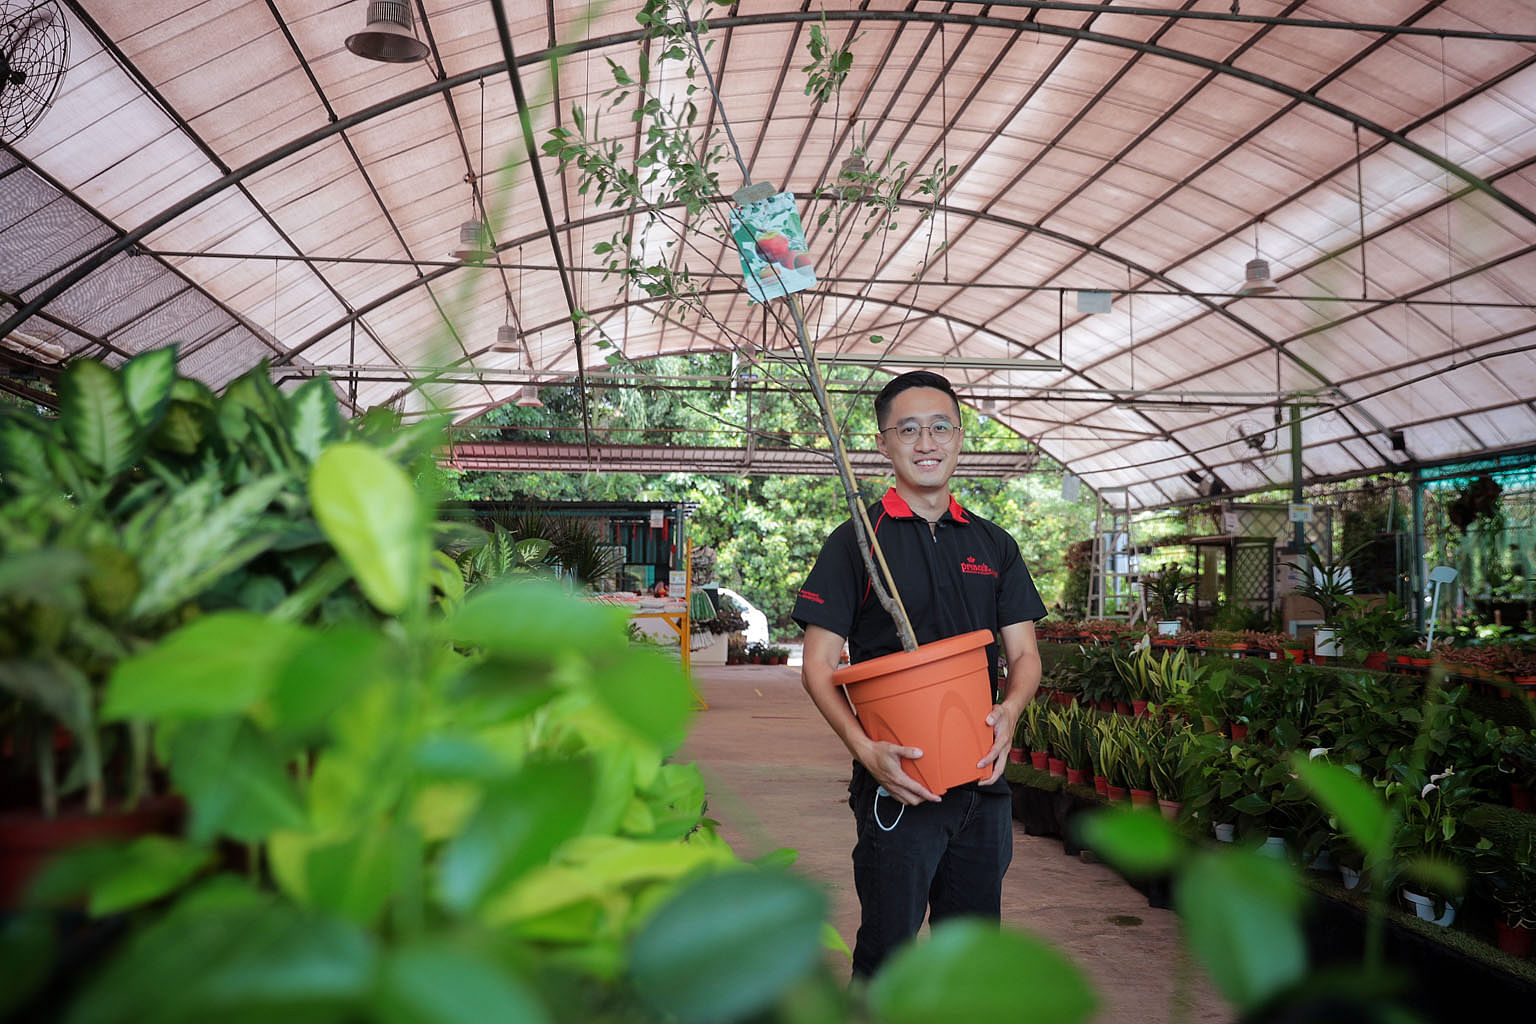 Mr Ken Ong, who used to work in the tourism industry, joined the landscaping sector about a year ago. The landscape coordinator says he finds the job rewarding even though he now earns about 20 to 30 per cent less than before.